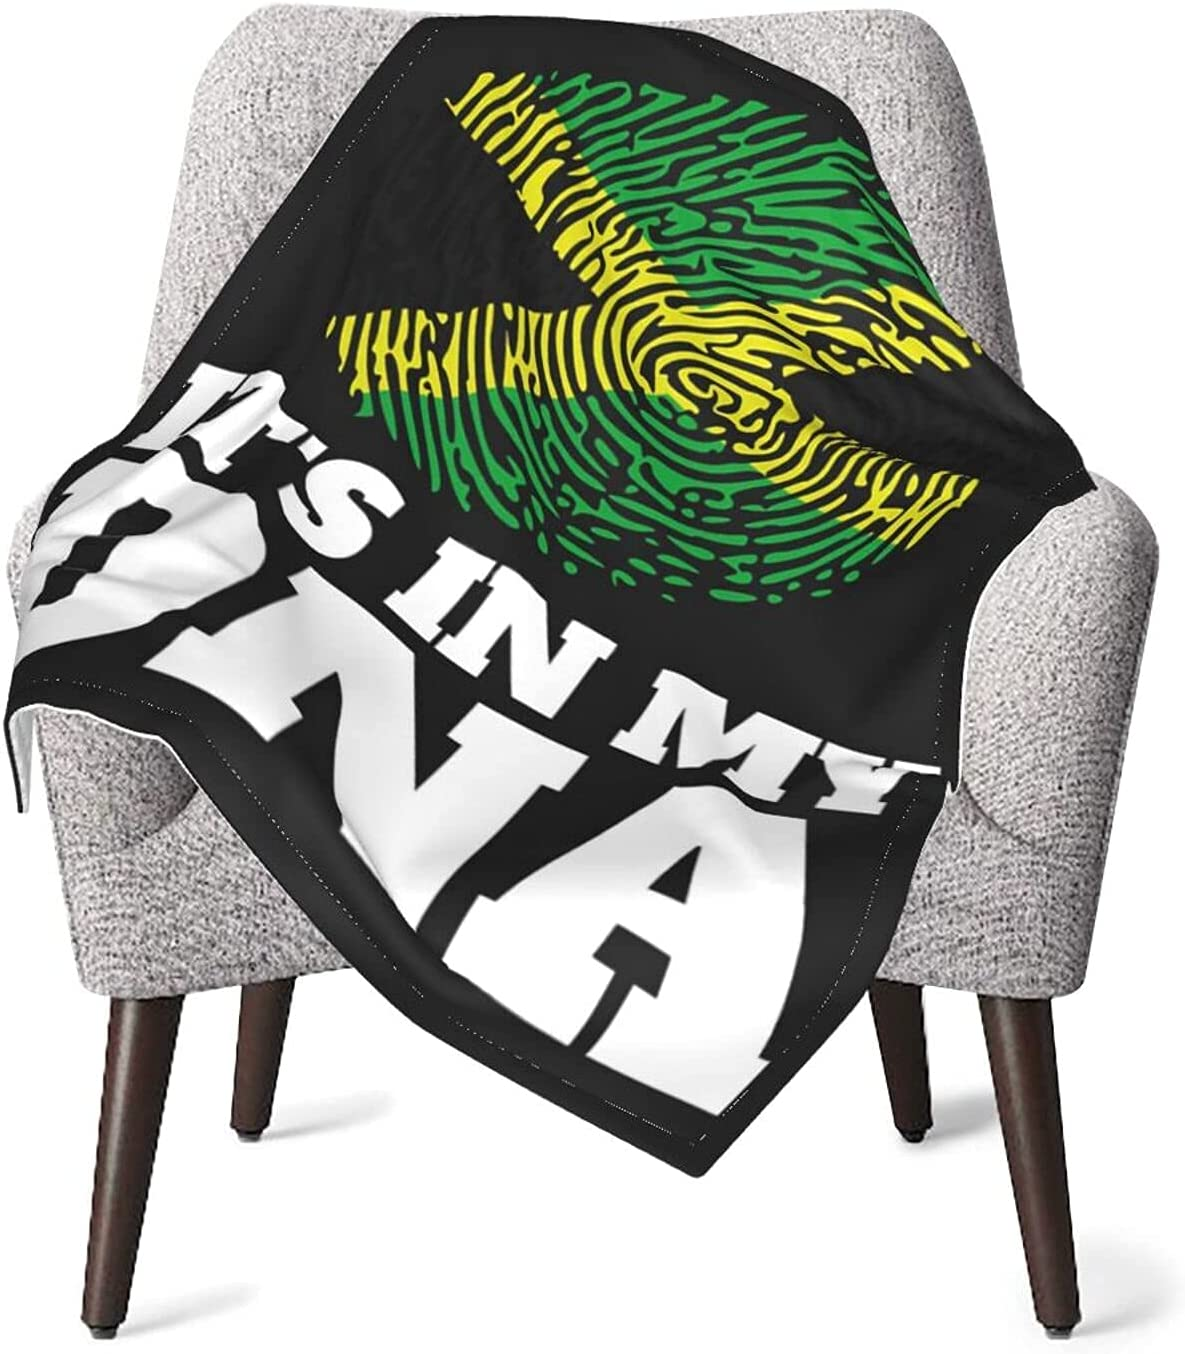 It's Our shop OFFers the best service in My DNA Jamaican Tampa Mall Fingerprint Air Throw Blankets Warm Cozy